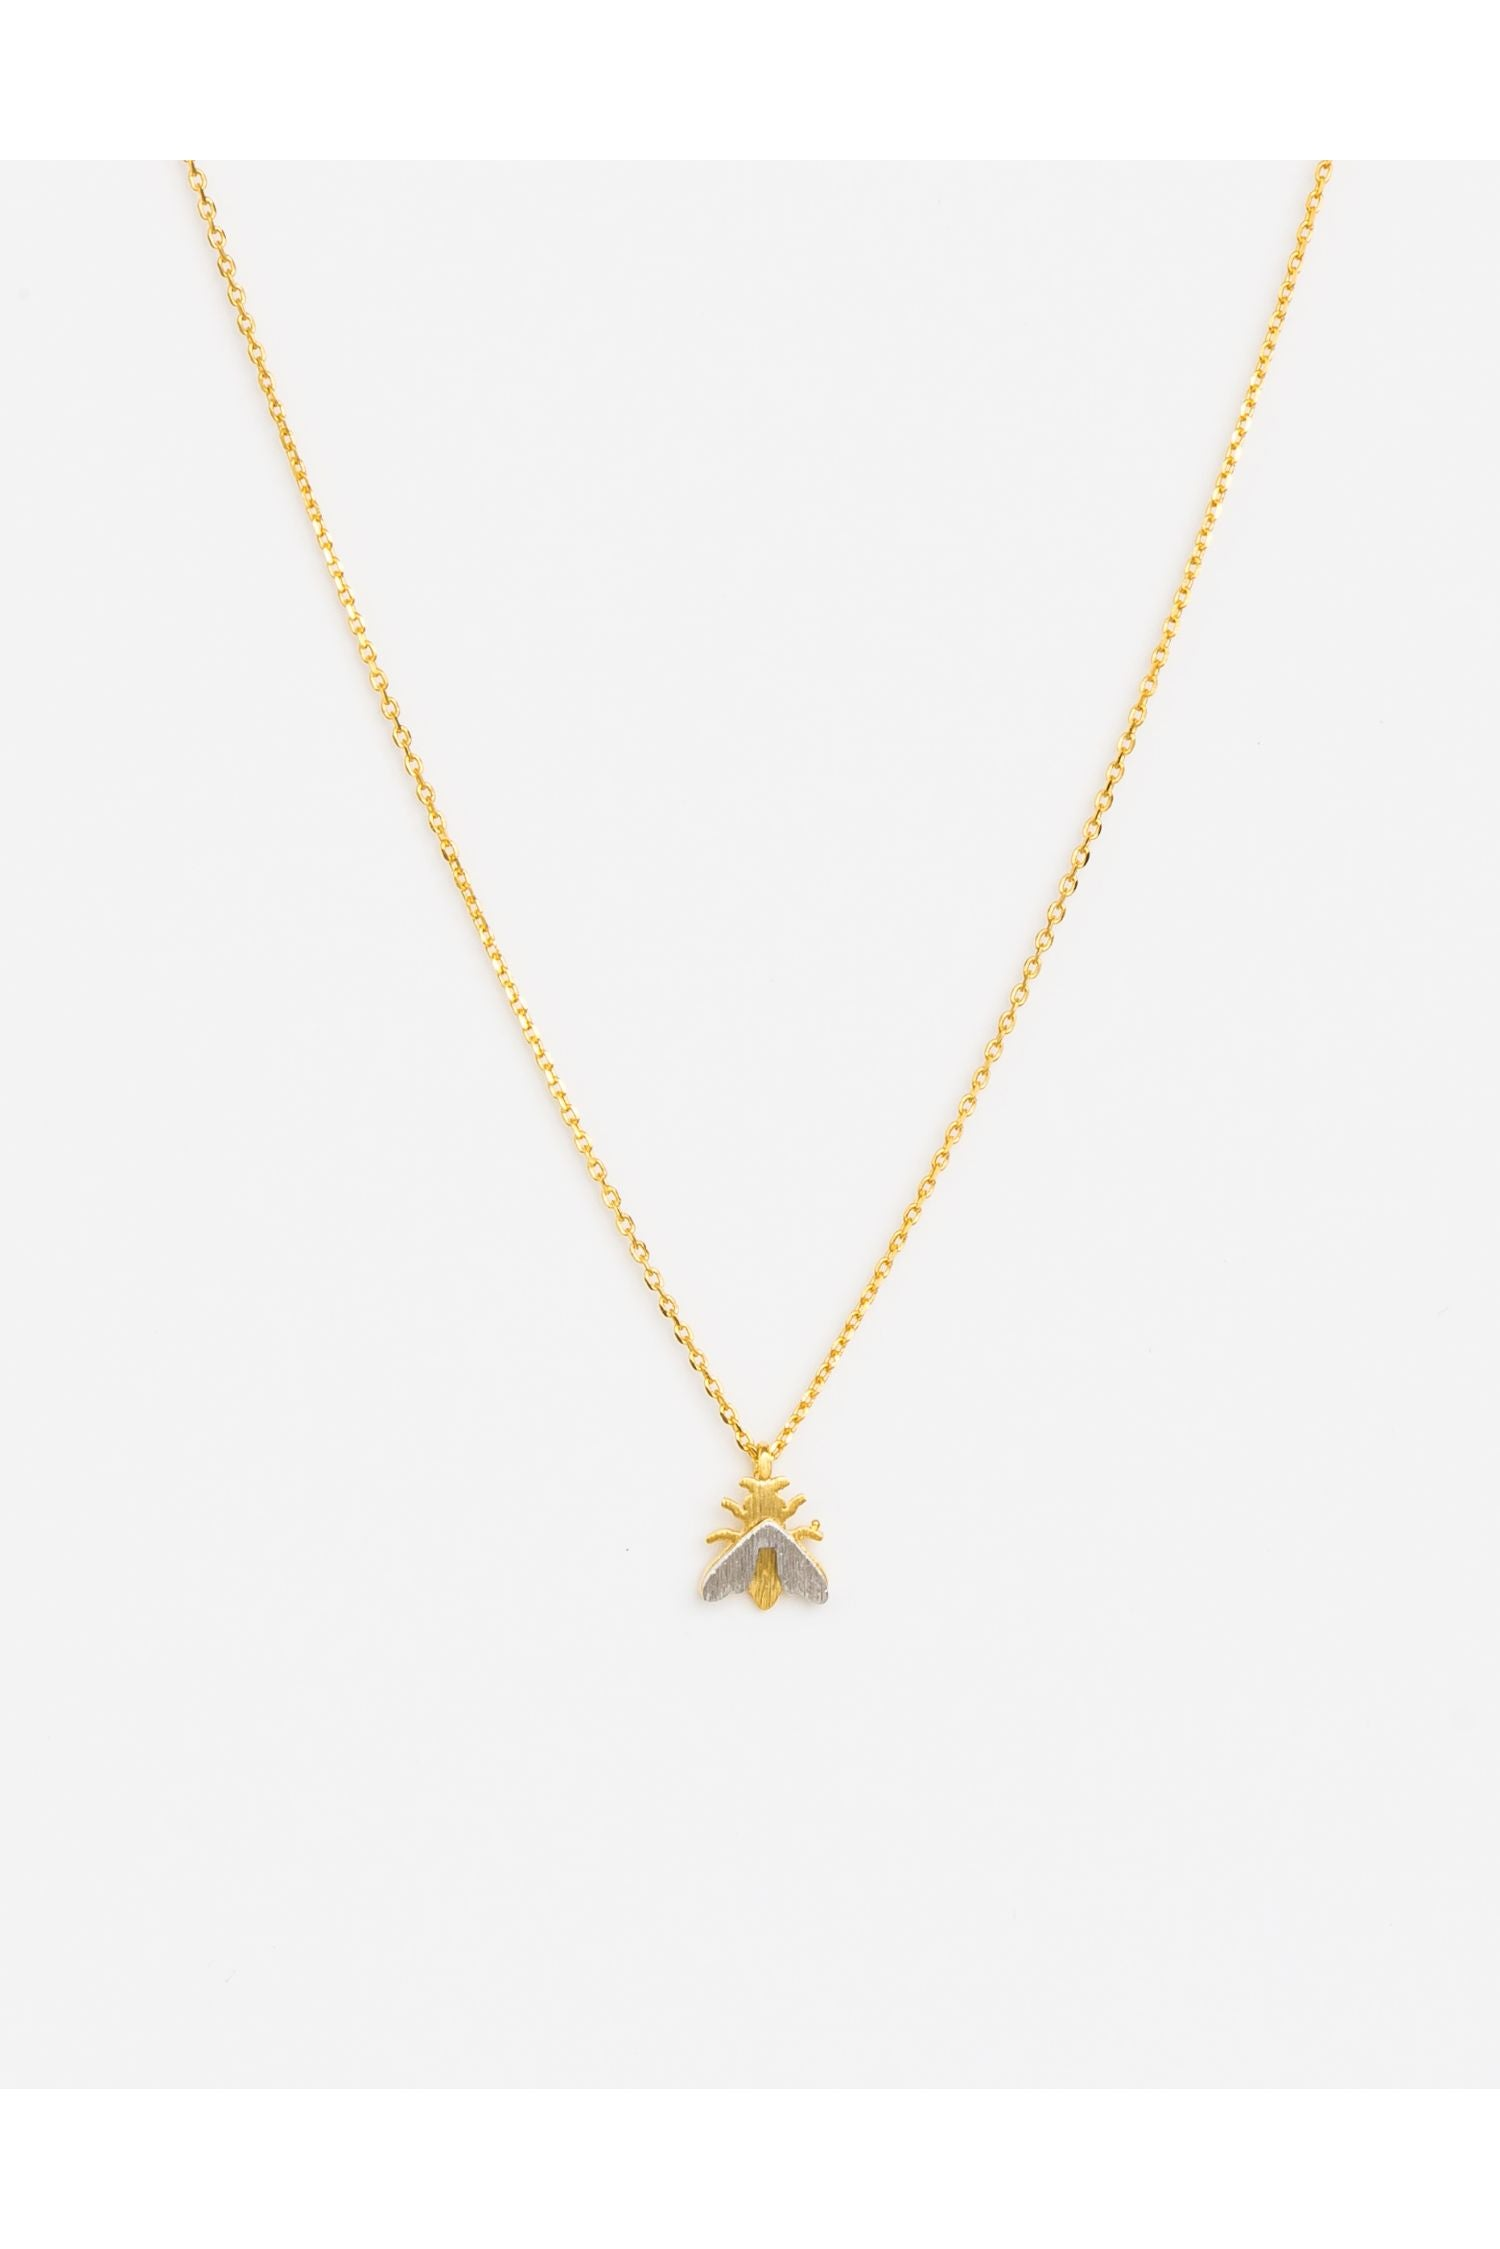 Necklace - buzz gold